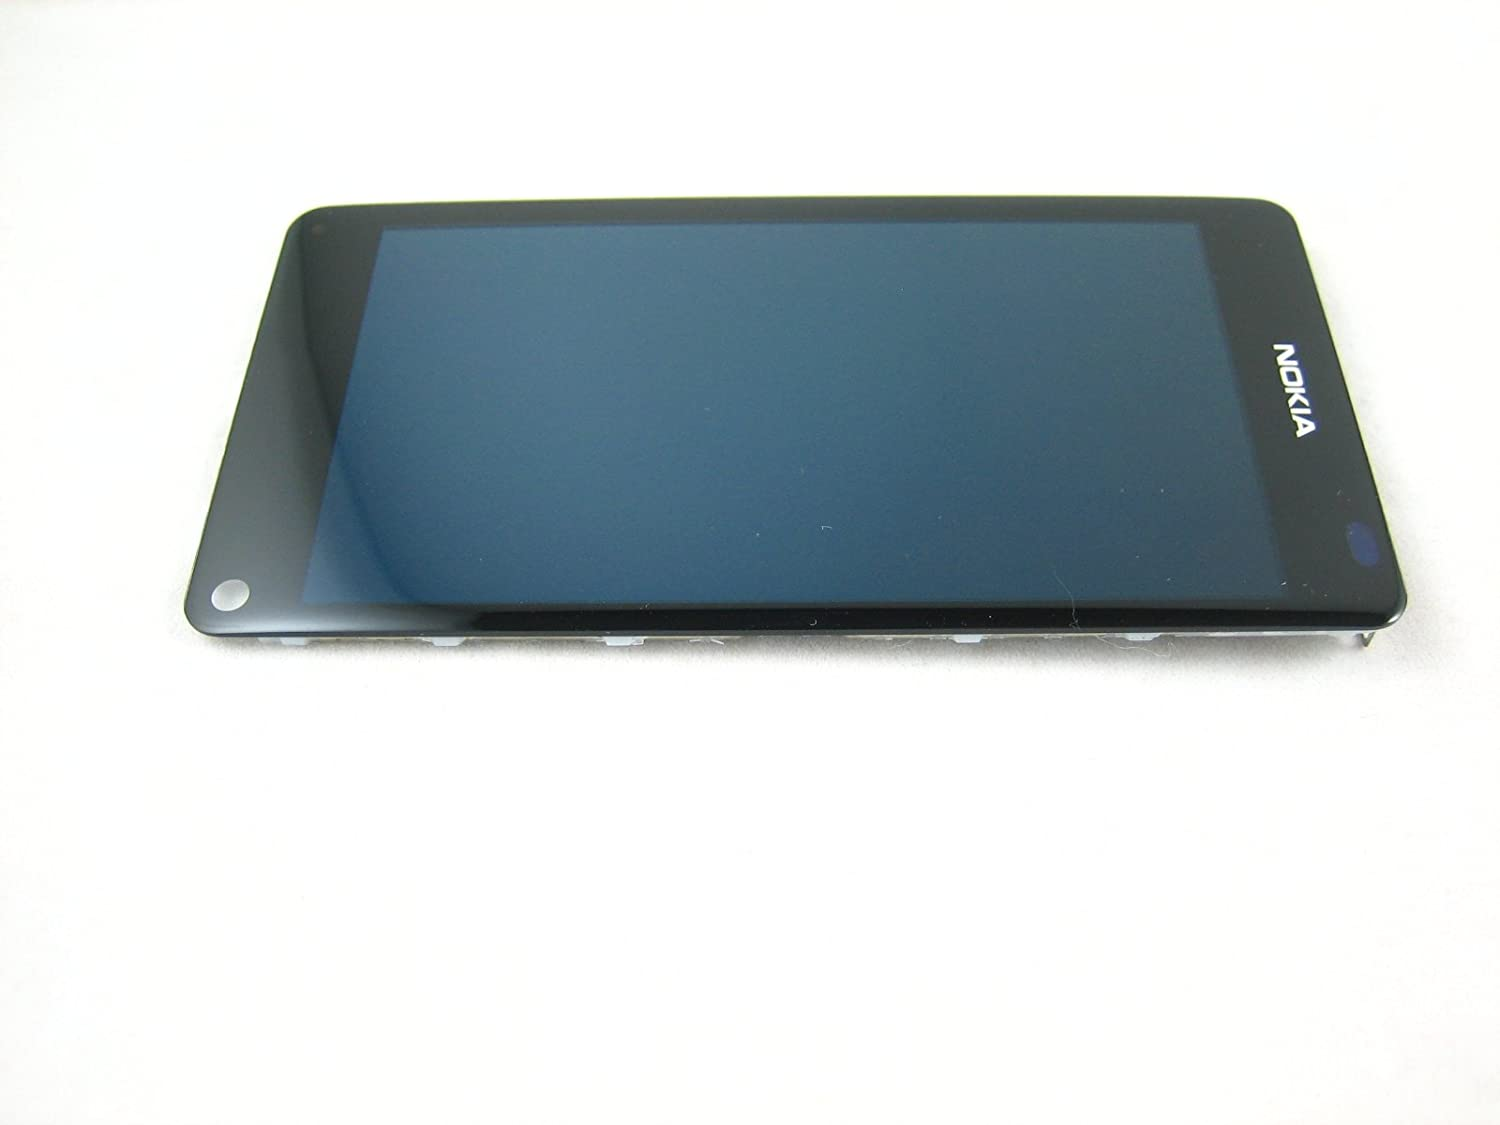 For-Nokia-N9-Full-LCD-Display-Touch-Screen-Digitizer-Mobile-Phone-Repair-Part-Replacement